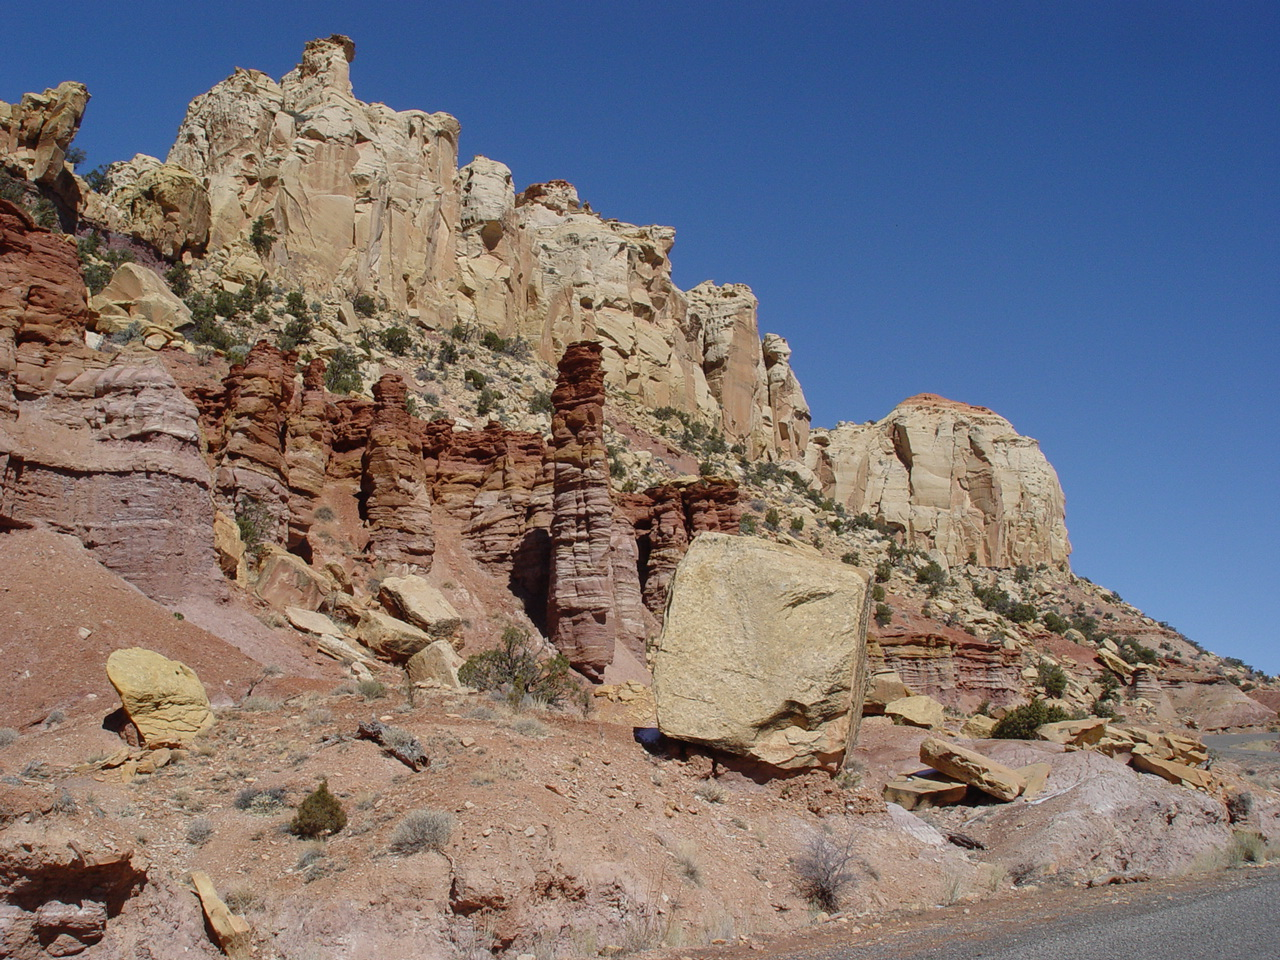 Multicolored cliffs rise above a paved road.